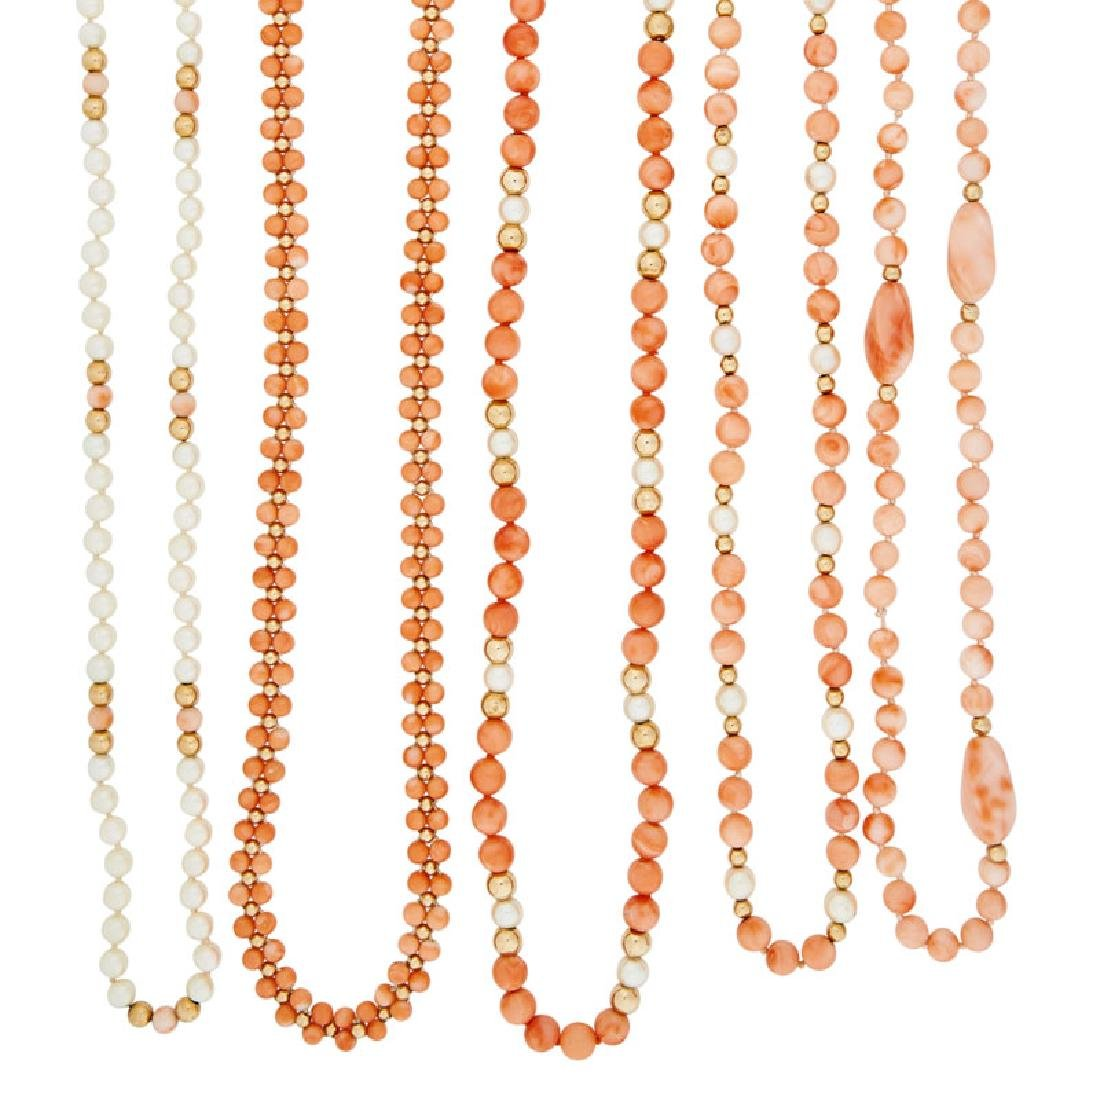 FIVE CORAL, PEARL OR YELLOW GOLD NECKLACES